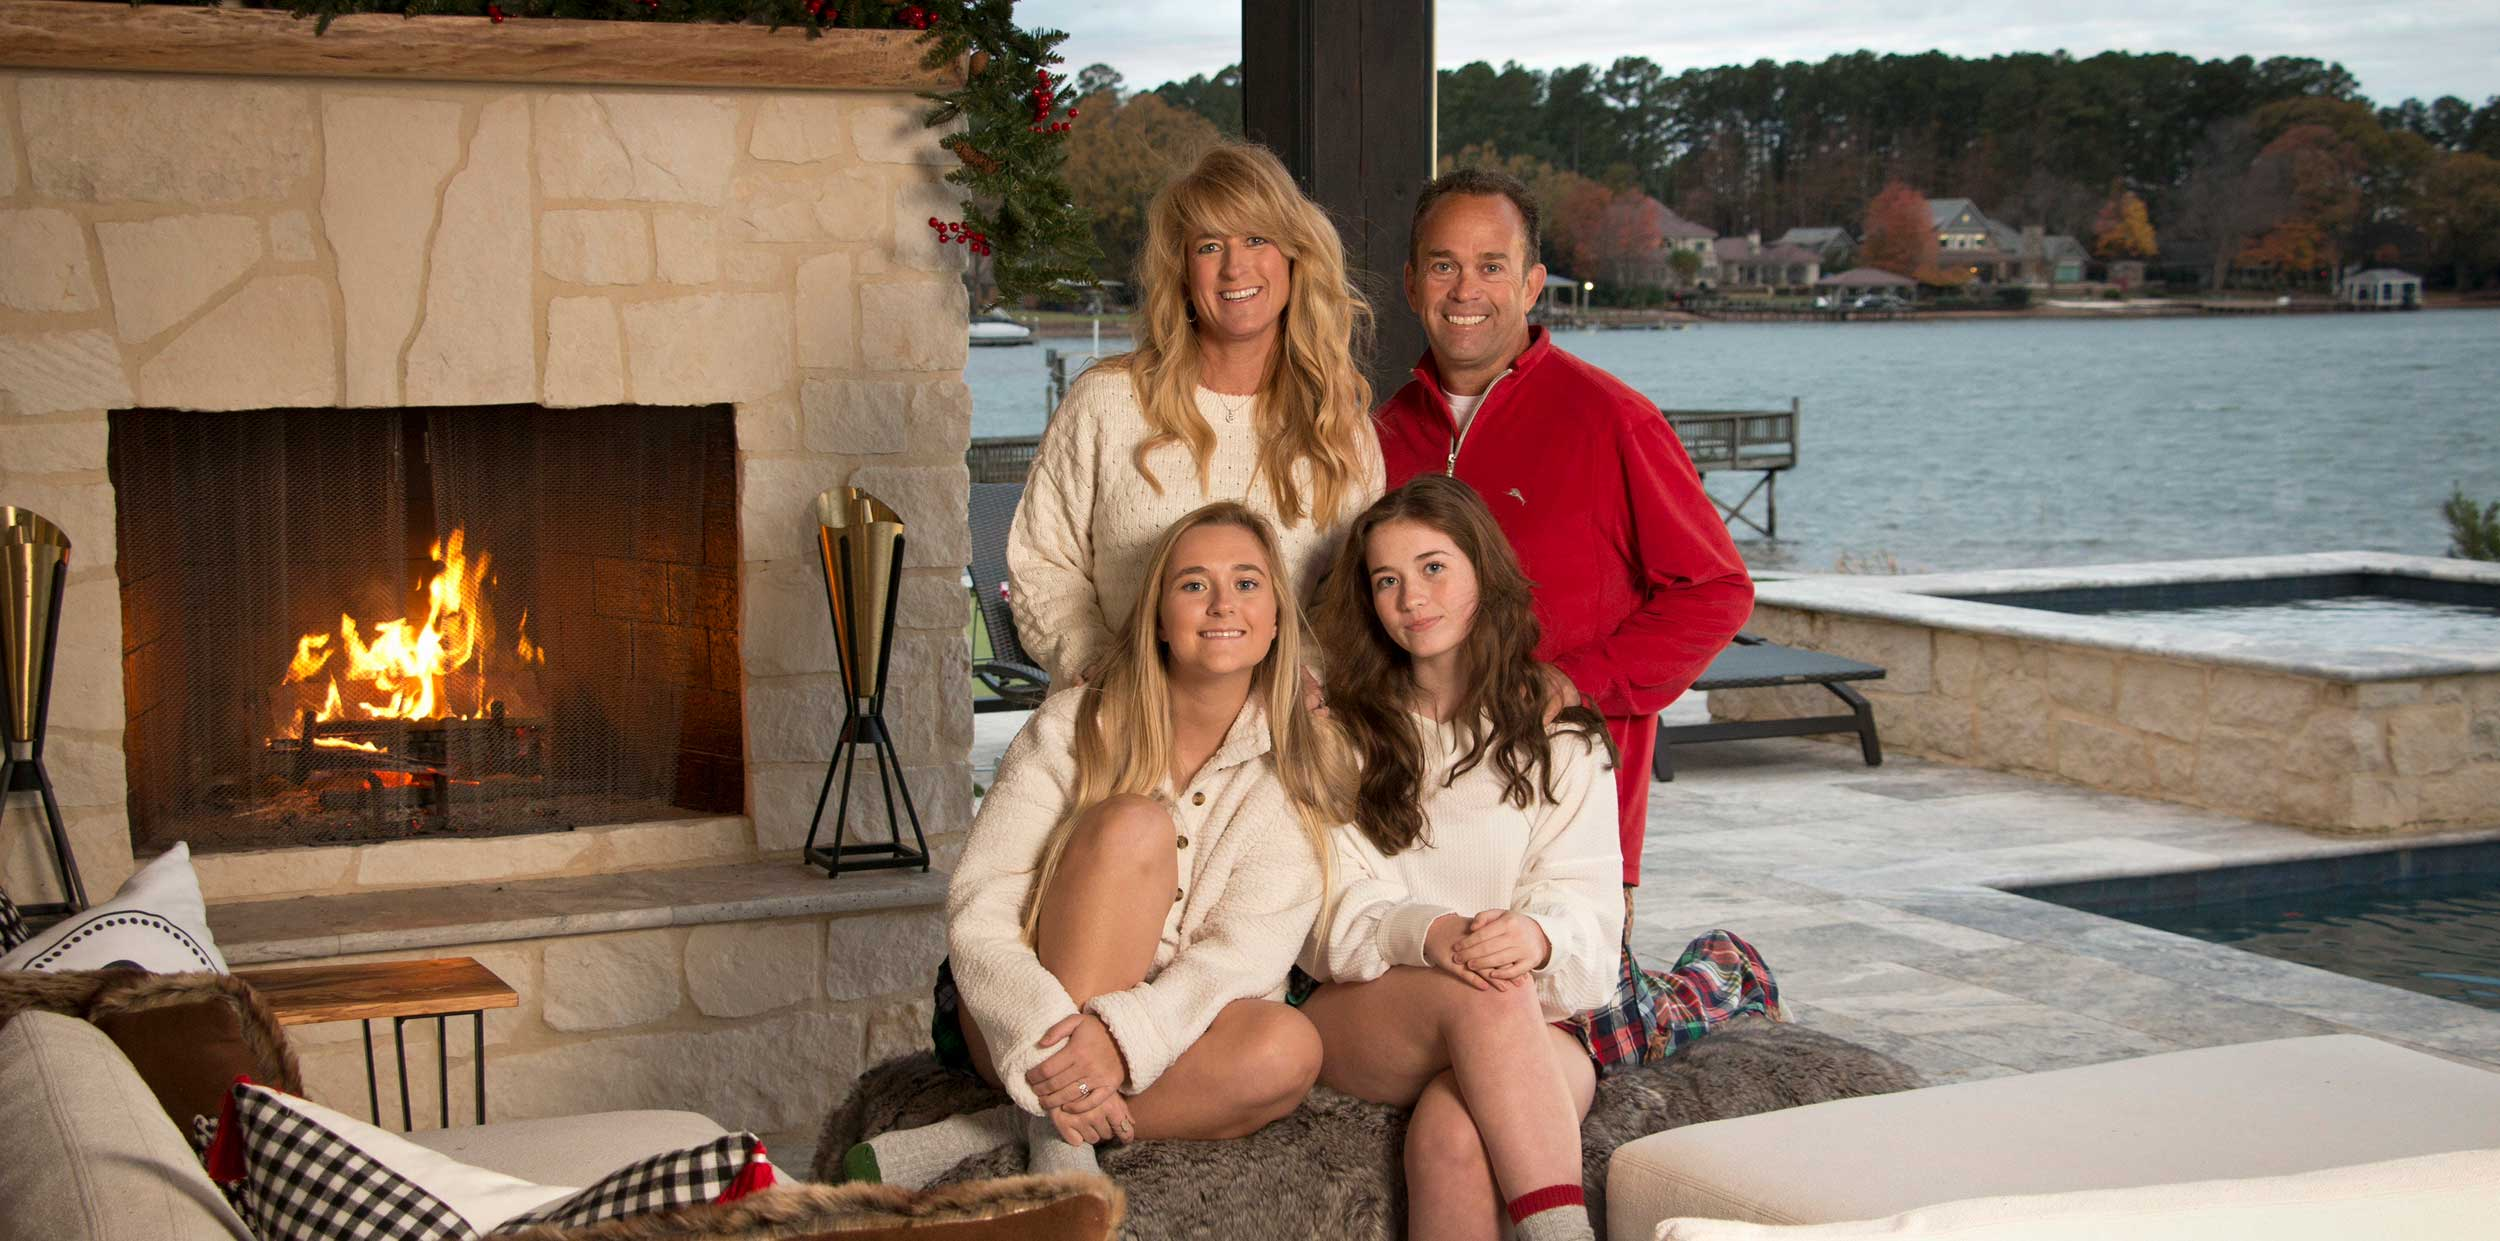 Family in front of fireplace on patio at Lake Norman, NC